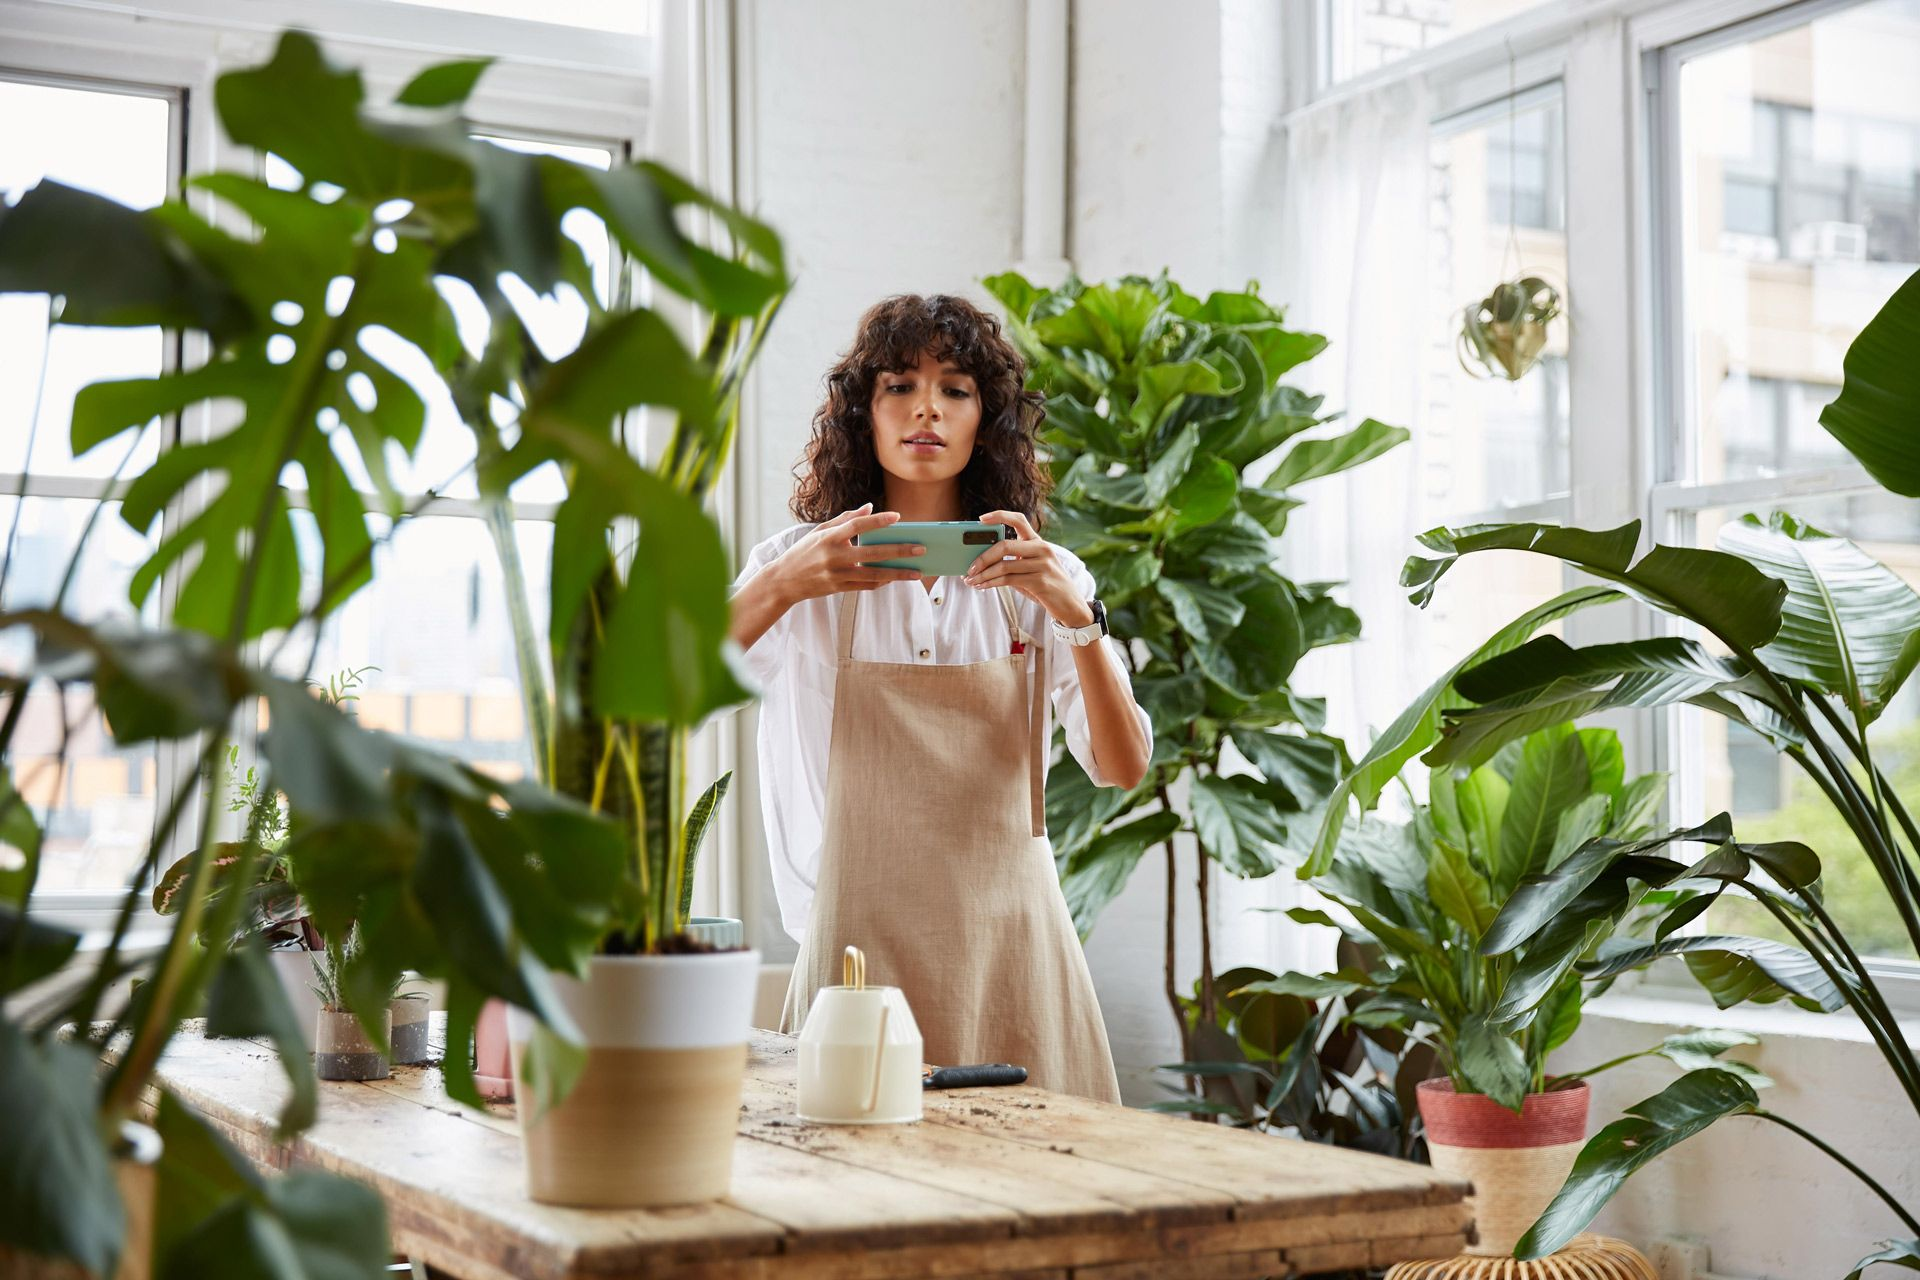 curly haired female model wearing beige apron and white shirt in nursery surrounded by plants taking a picture with turquoise smartphone photographed by Oumayma B Tanfous for Samsung phone campaign